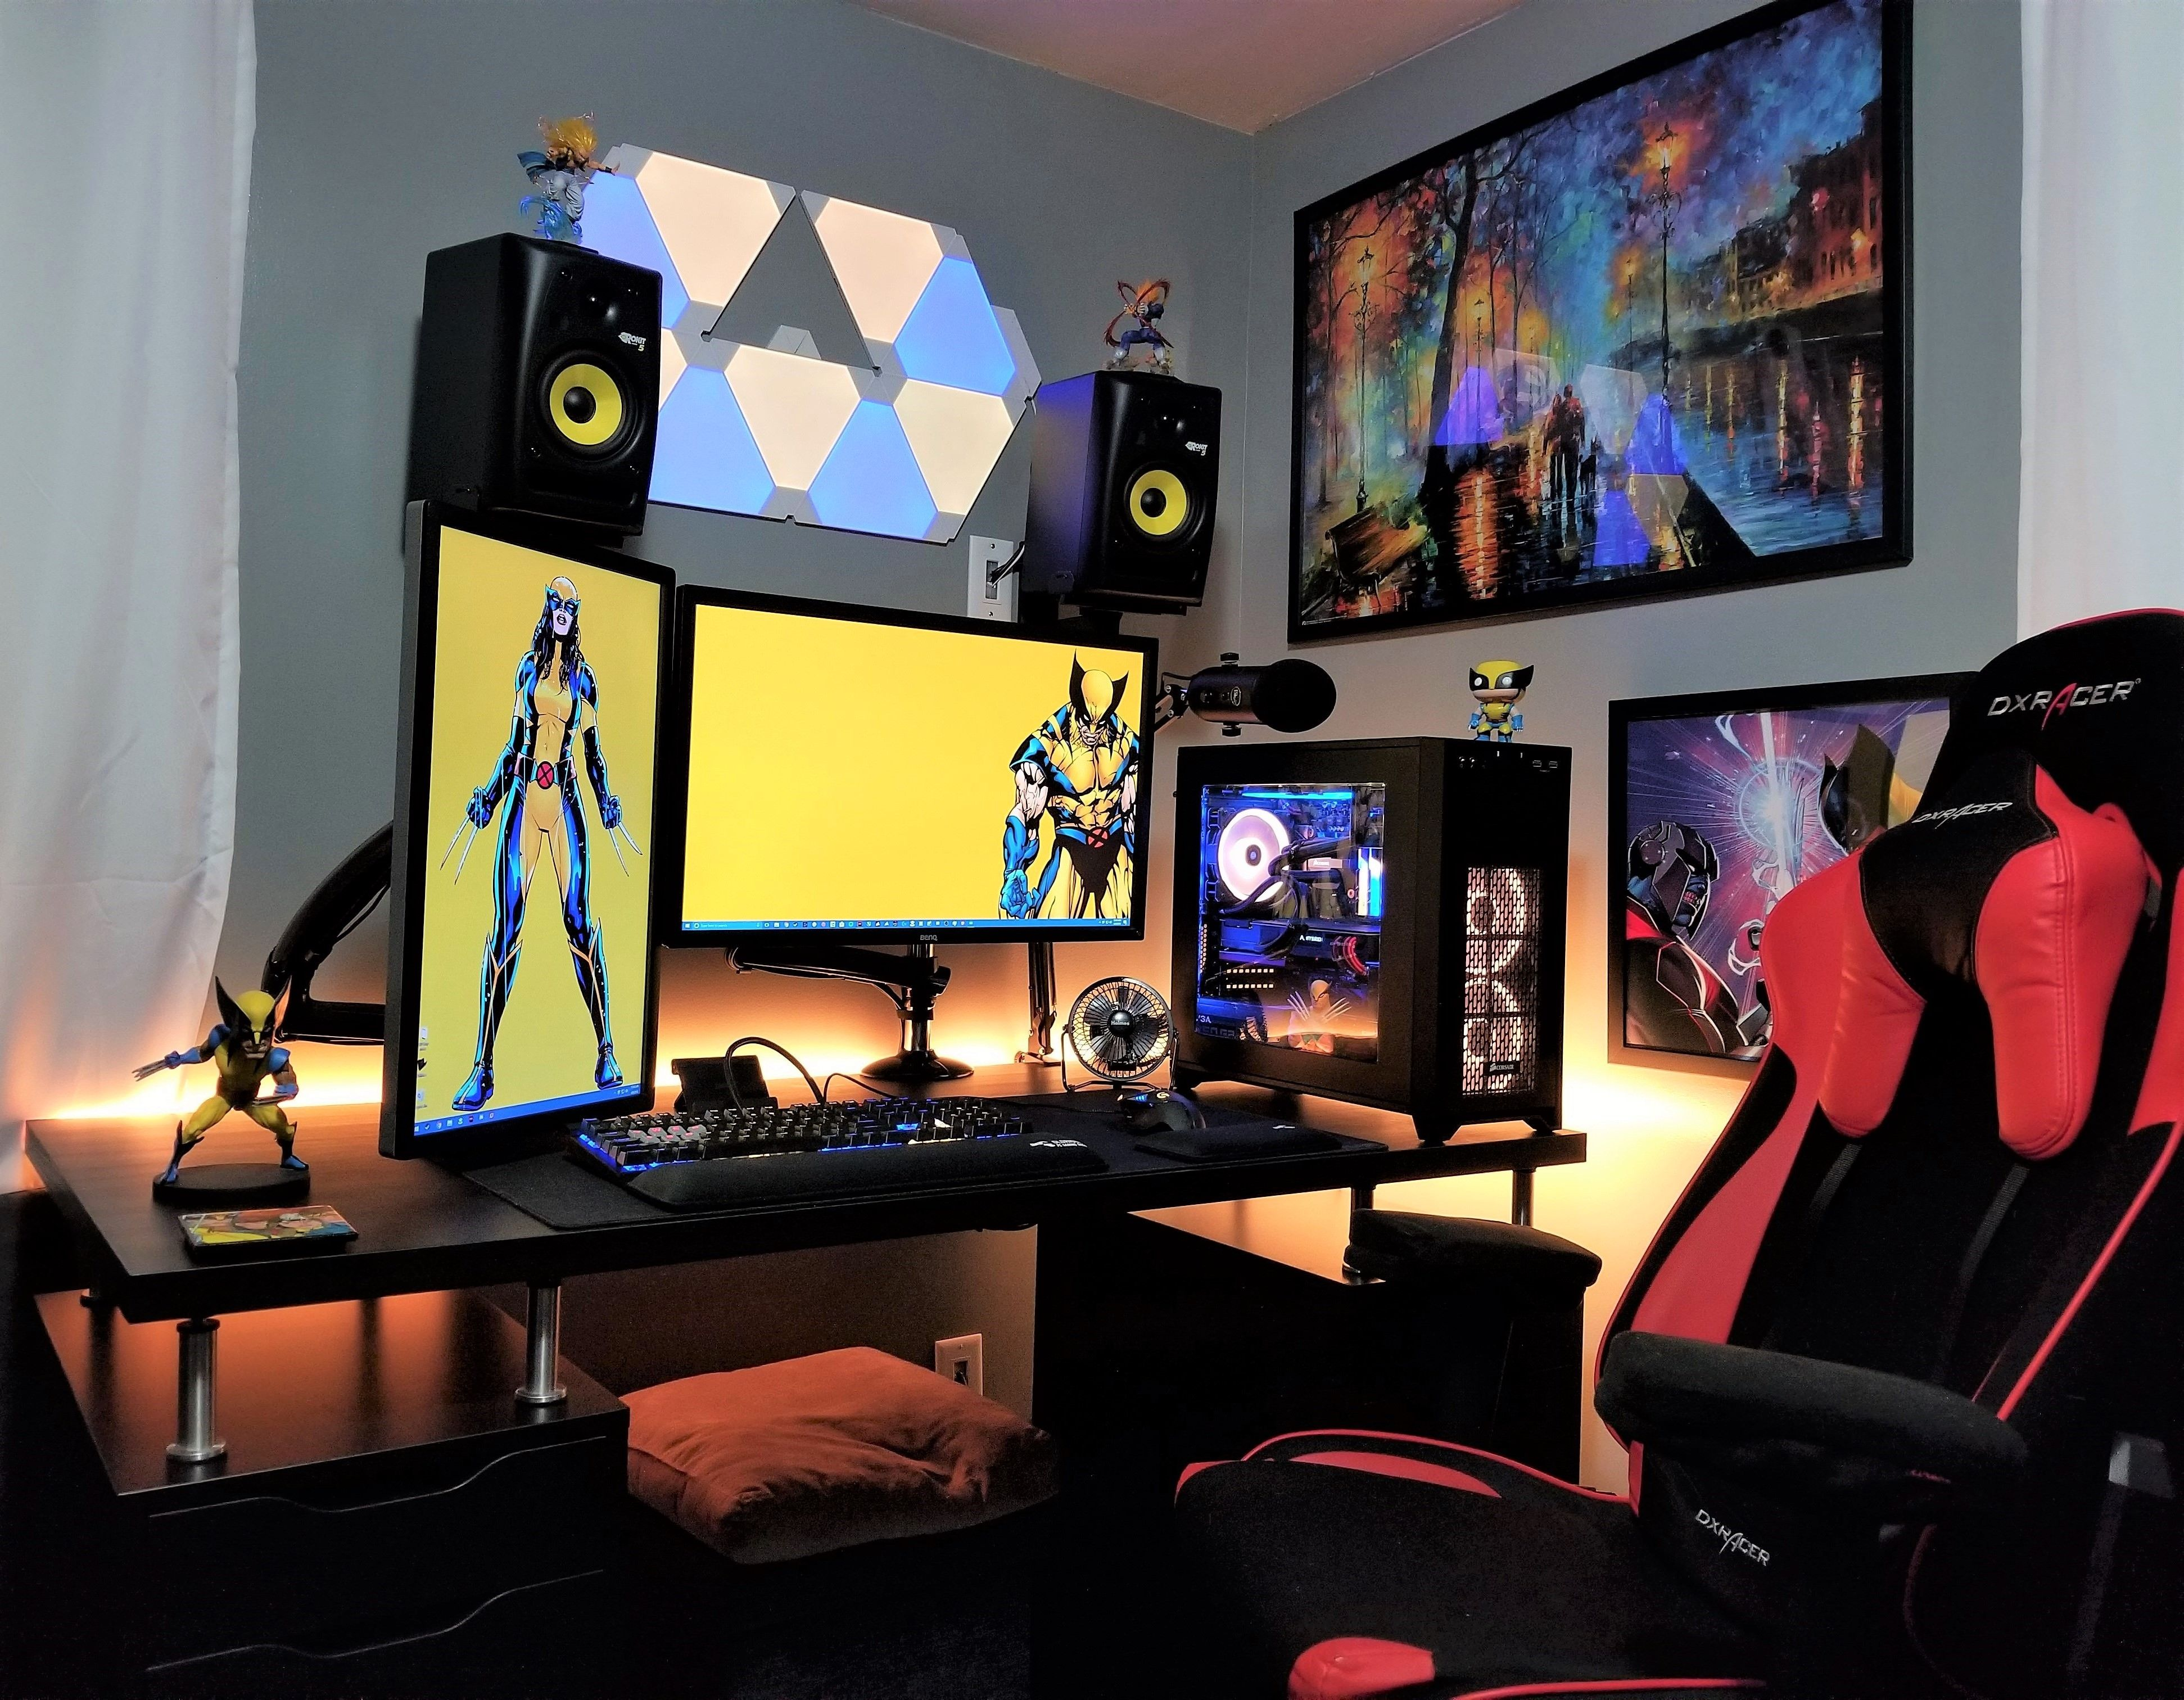 A Different Color Scheme And A Lot Of Influence From This Community Best Computer Chairs Bedroom Colors Gaming Room Setup